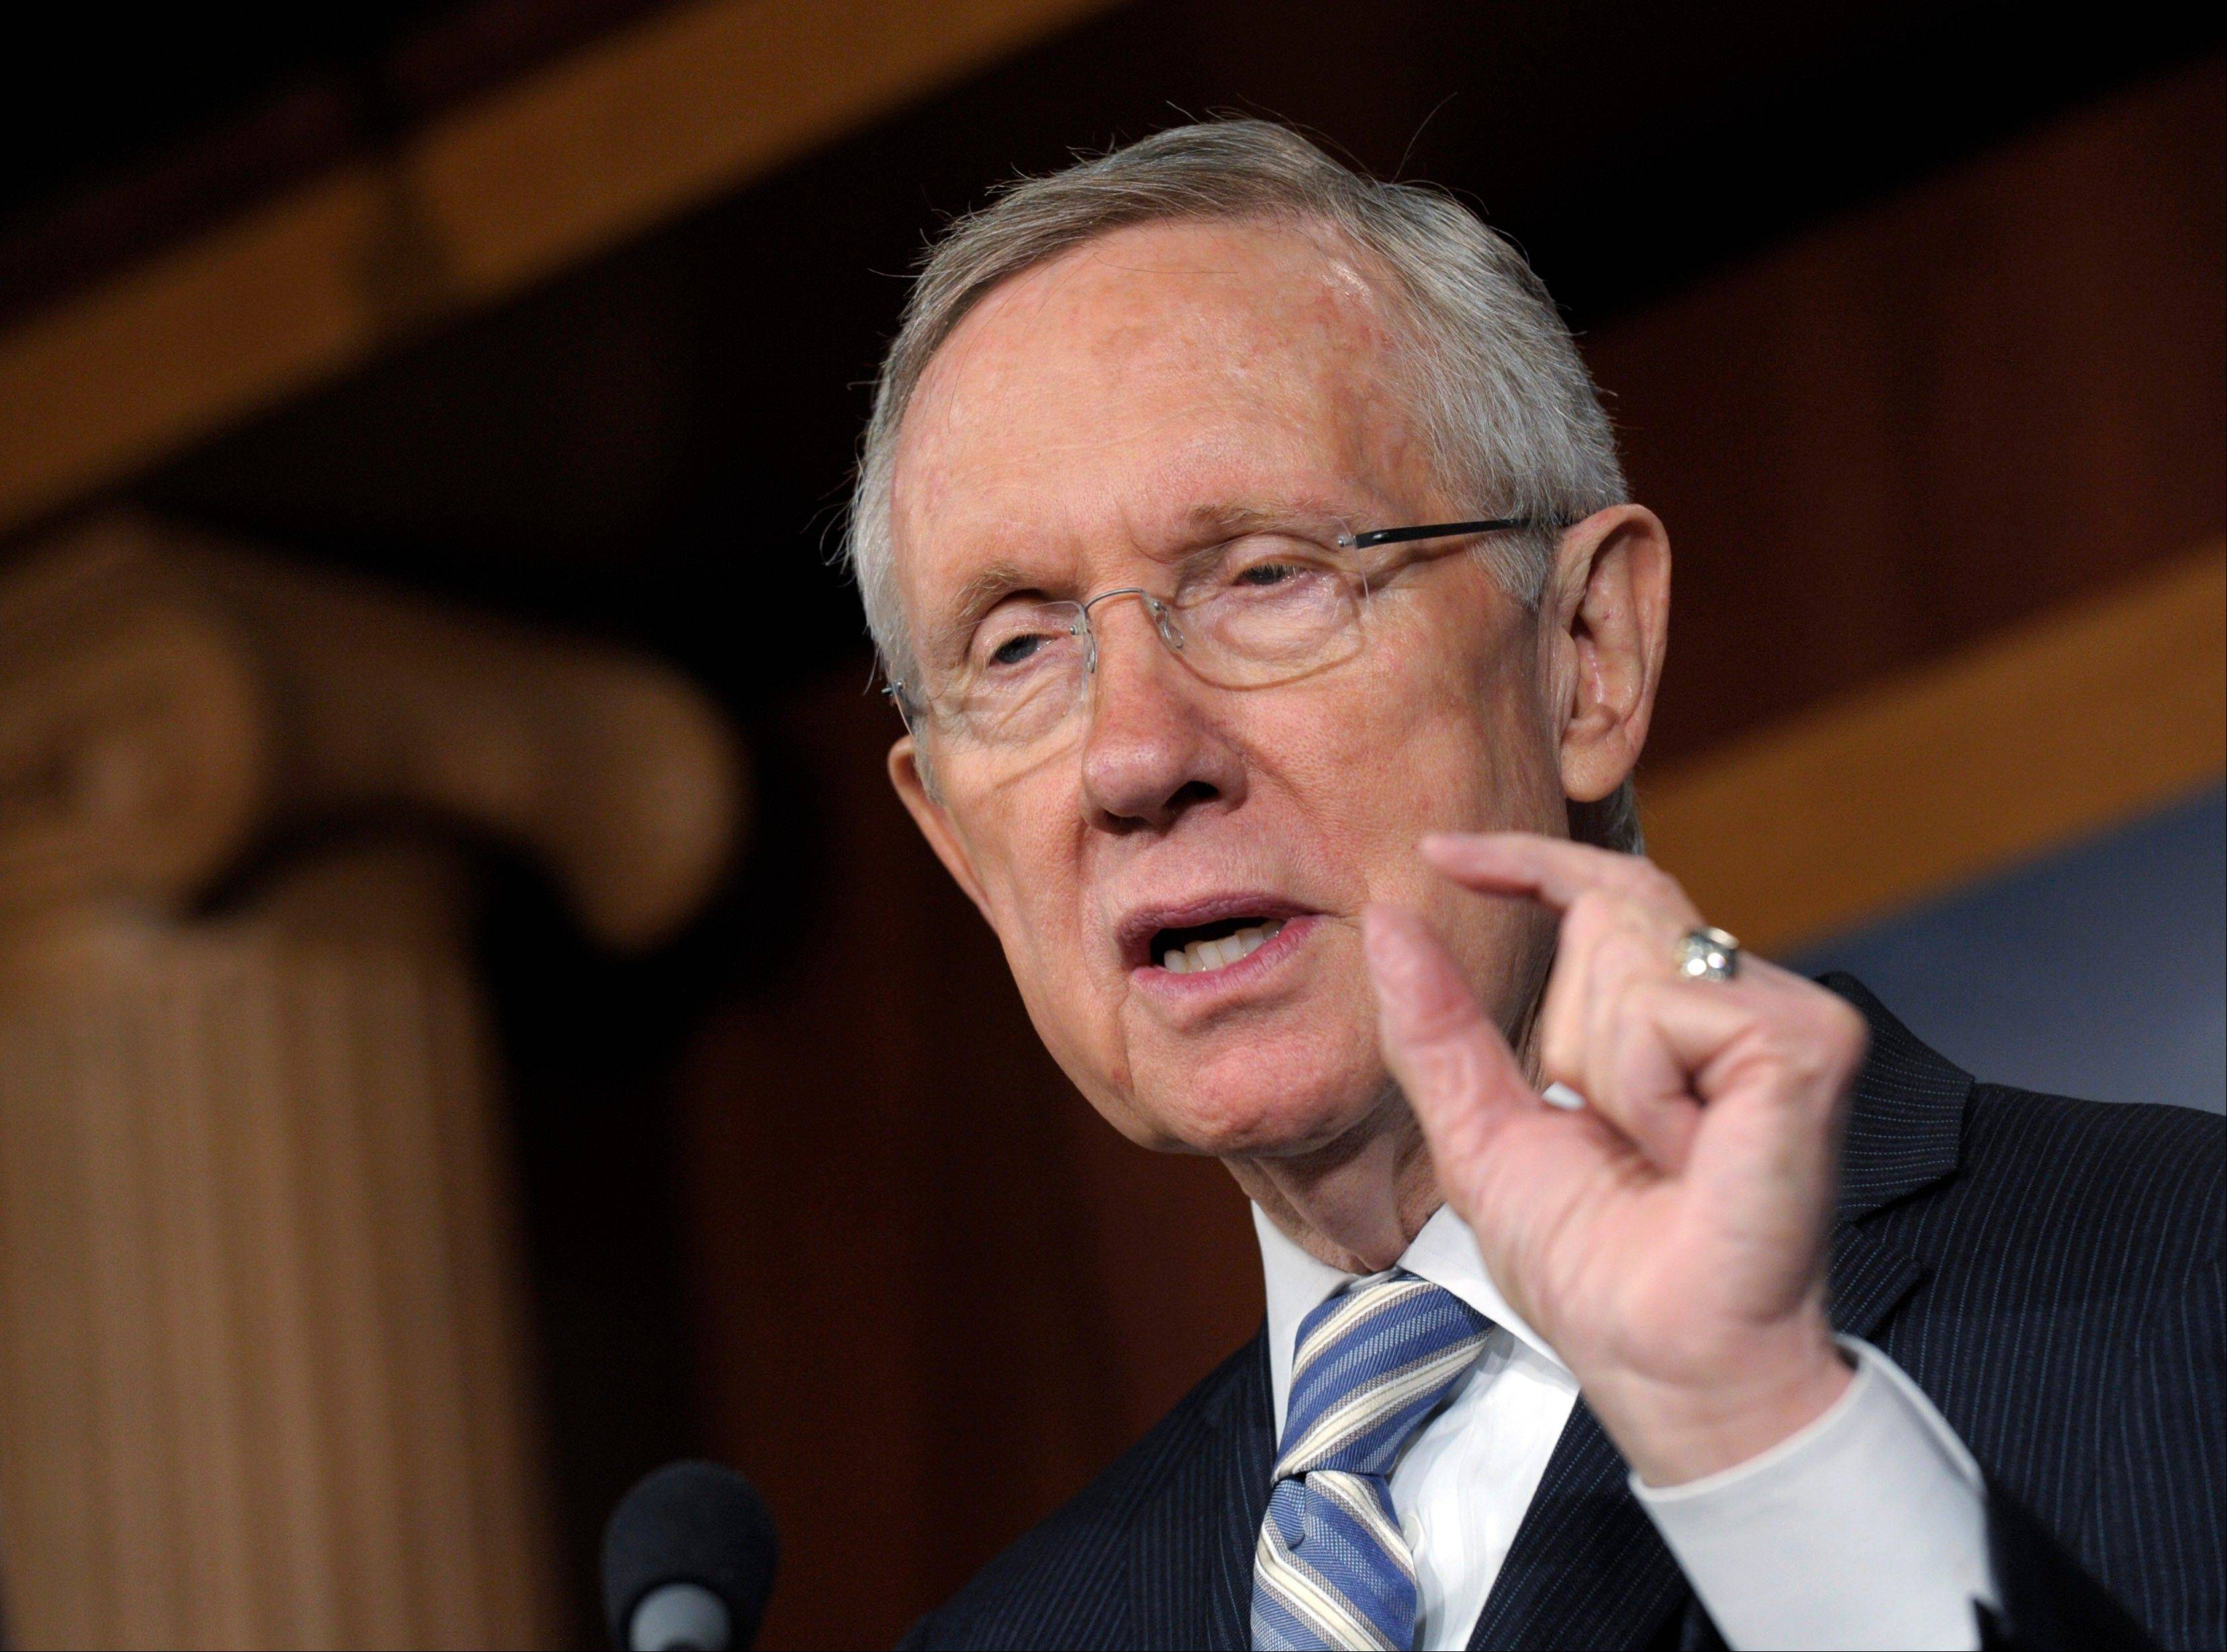 Senate Majority Leader Harry Reid, a Nevada Democrat, gestures Wednesday as he discusses Tuesday�s election results during a news conference on Capitol Hill in Washington.